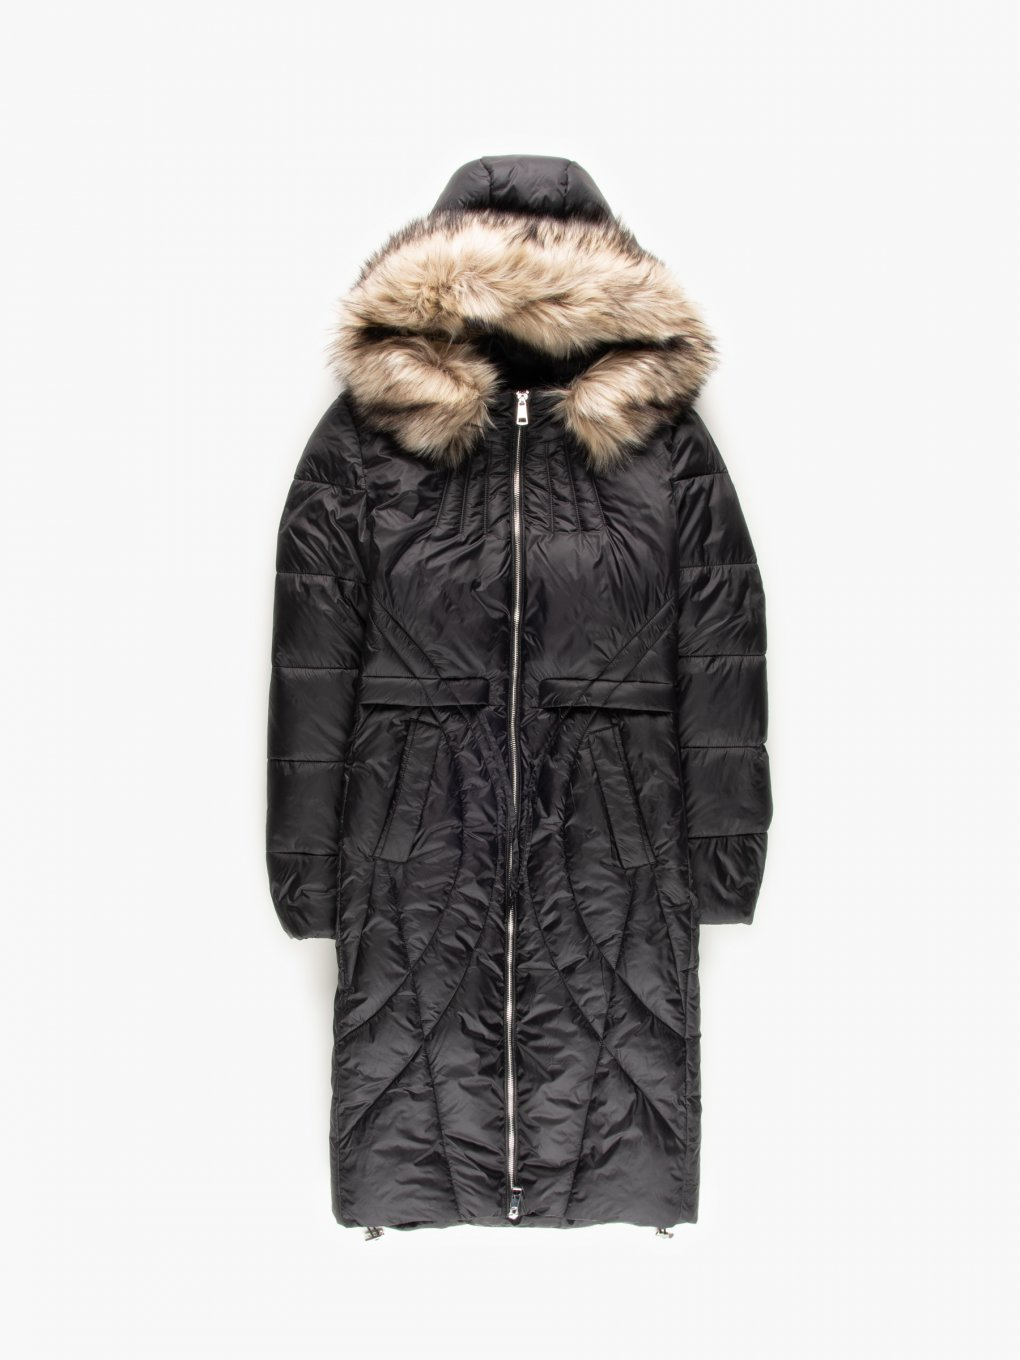 THINK GREEN: Longline quilted recycled polyester padded coat with removable faux fur